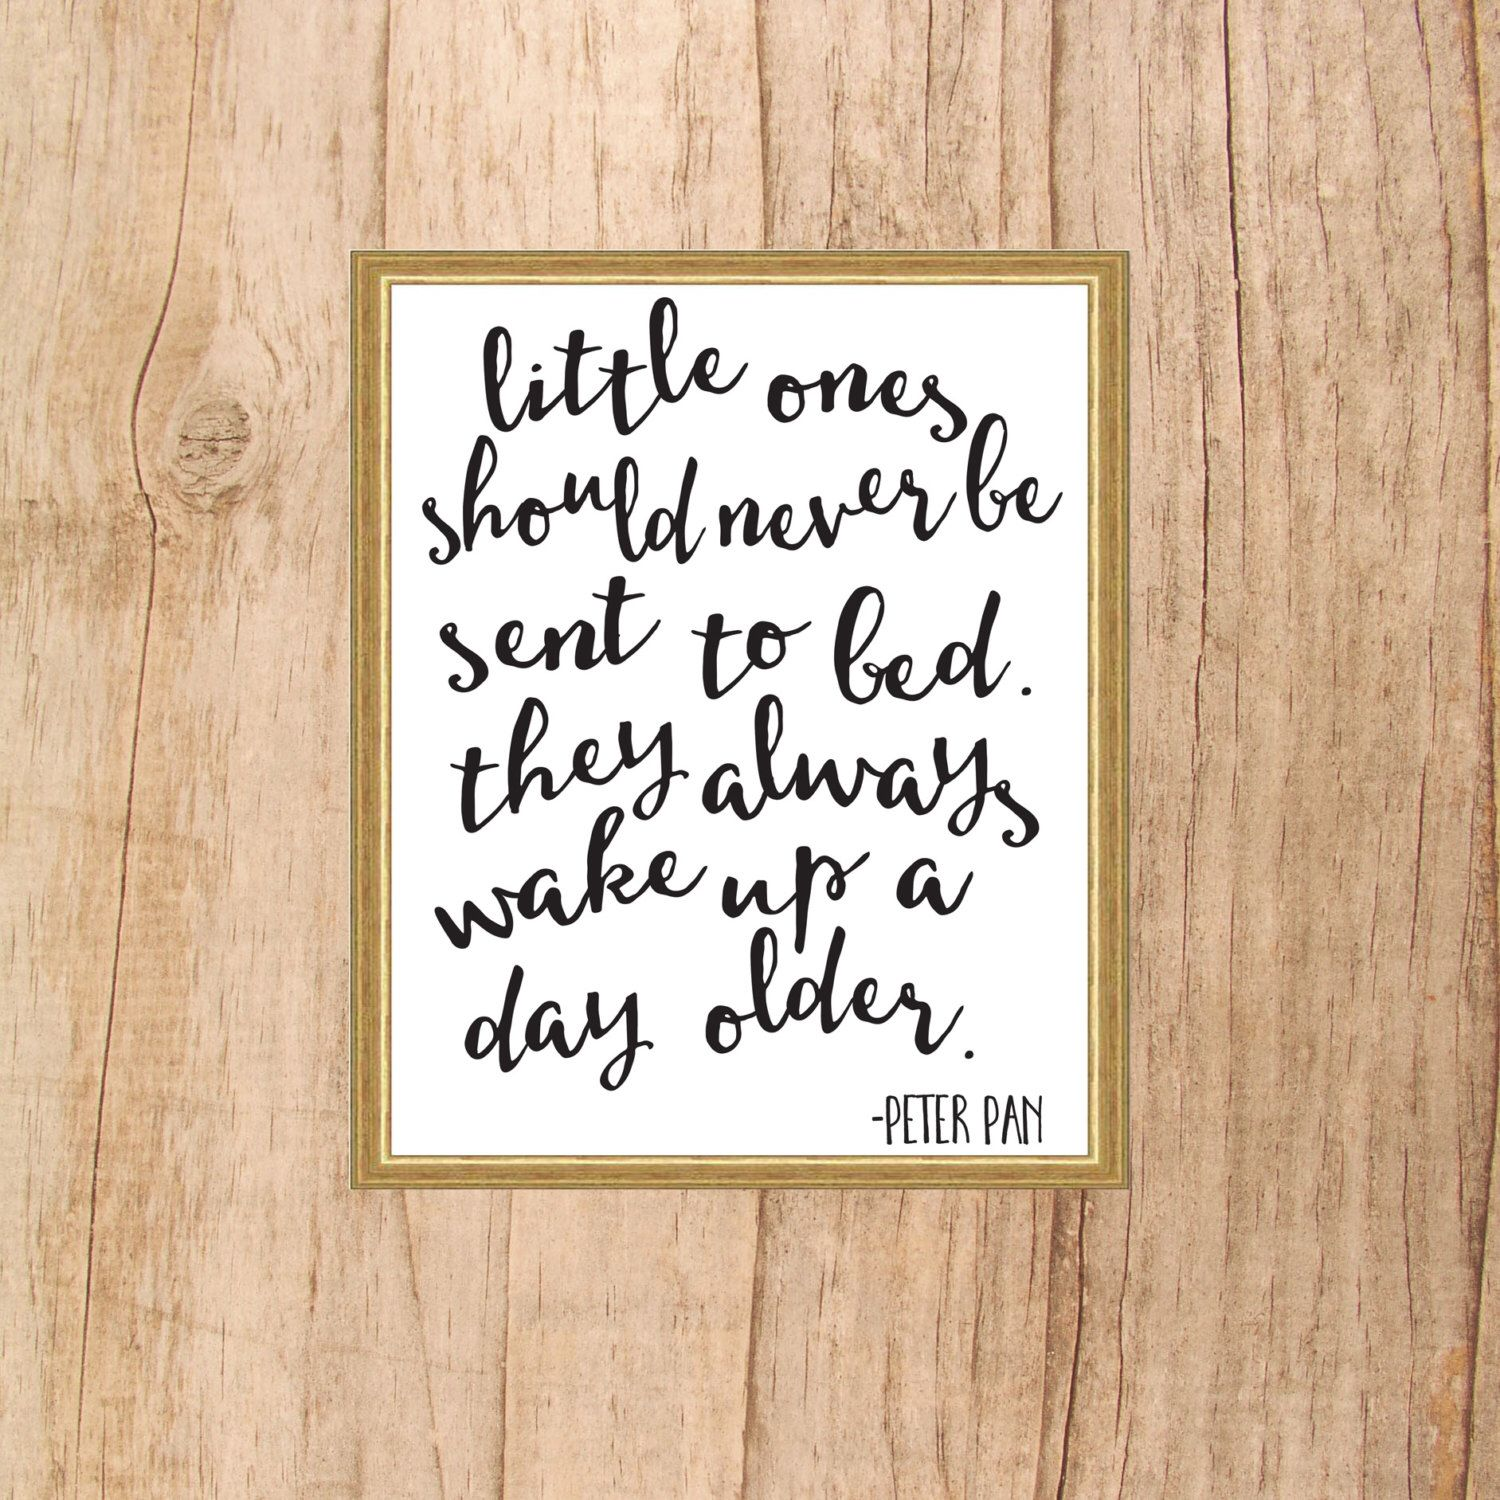 Peter Pan Print, Digital Downloaded Print, Little Ones Should Never Be Sent To Bed Quote, Printable Art, Instant Download, Peter Pan Quote by JTPaperie on Etsy https://www.etsy.com/listing/255632344/peter-pan-print-digital-downloaded-print